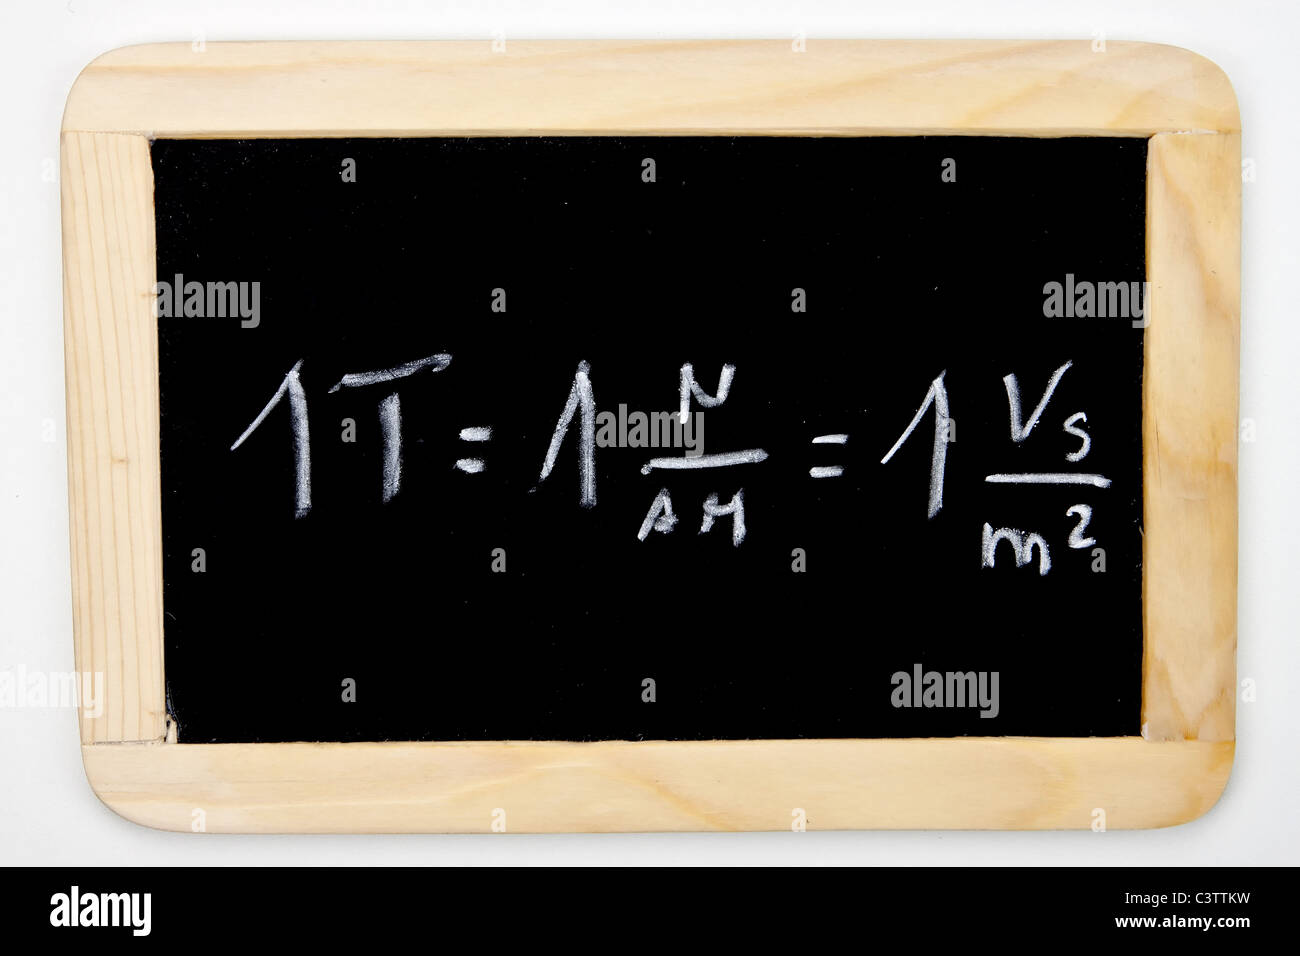 a mathematical formula on a chalkboard - Stock Image